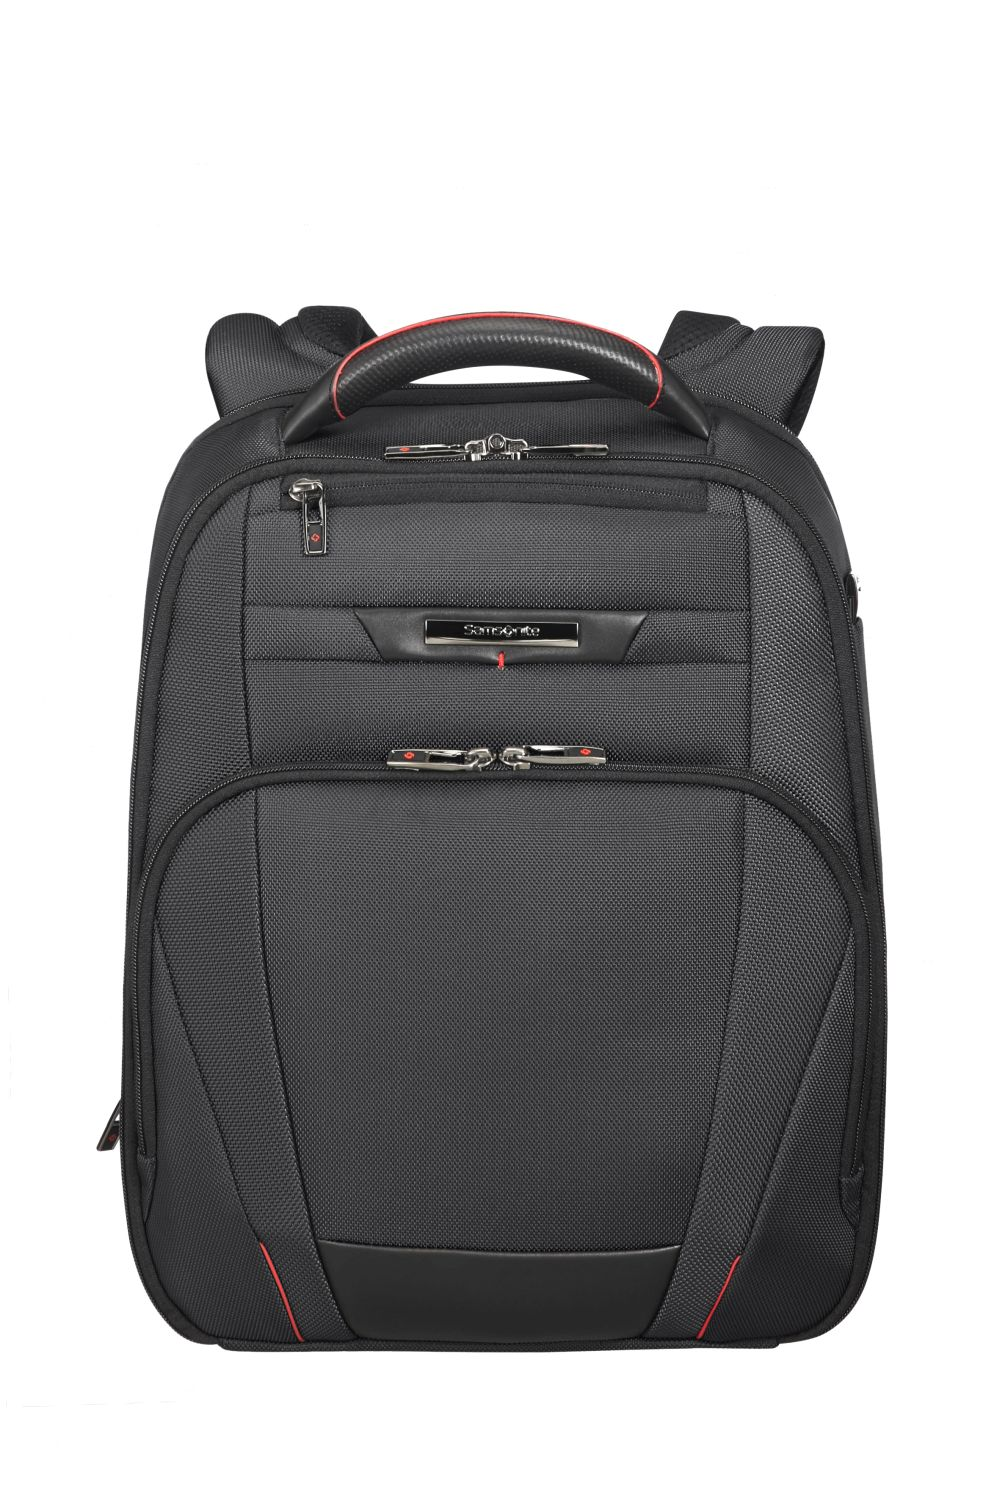 samsonite pro dlx 5 laptop backpack black kofferexpress 24. Black Bedroom Furniture Sets. Home Design Ideas